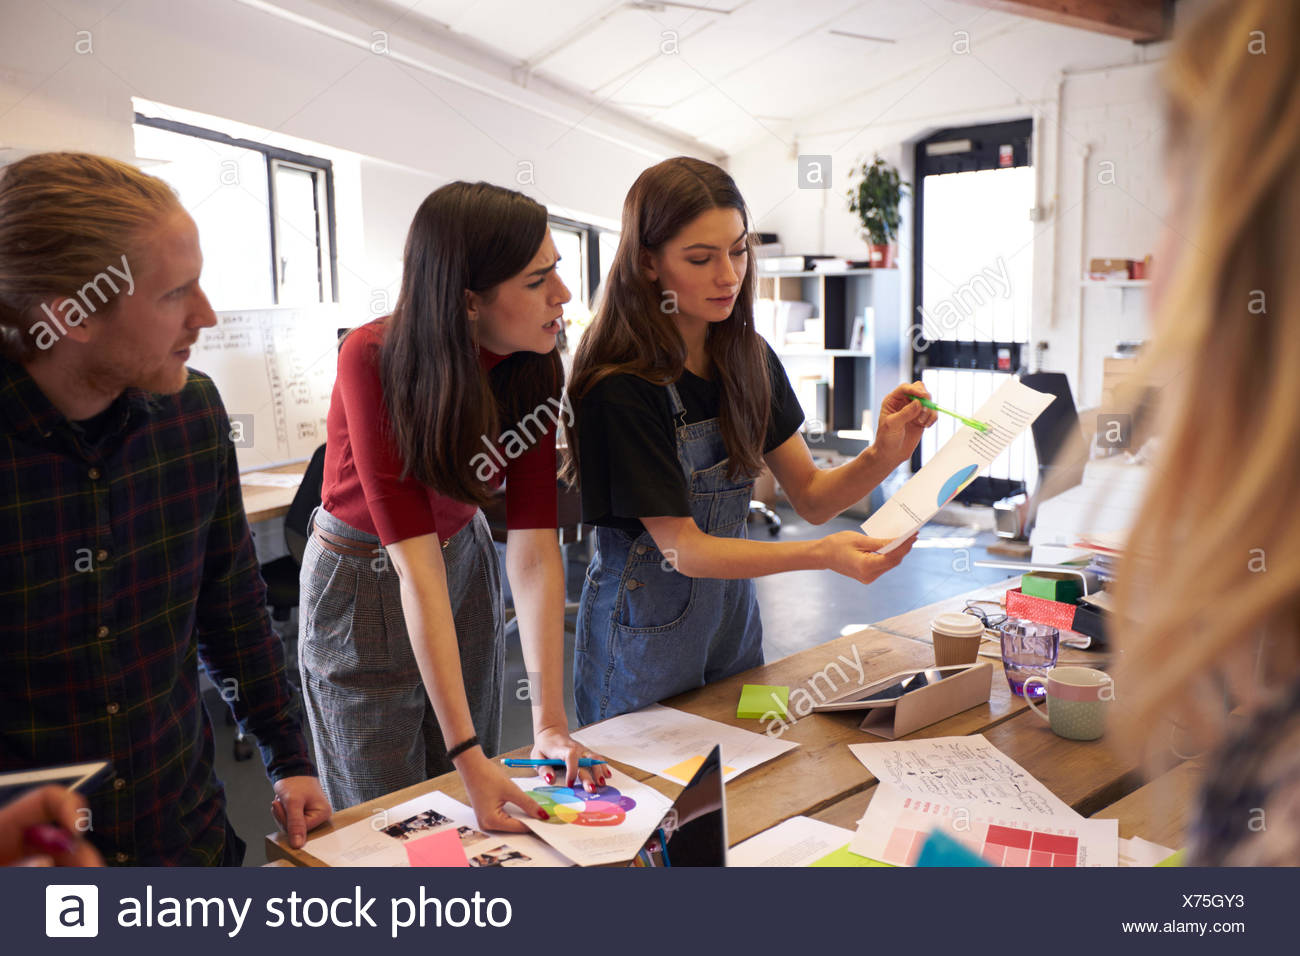 Creative Brainstorming Meeting In Design Office - Stock Image